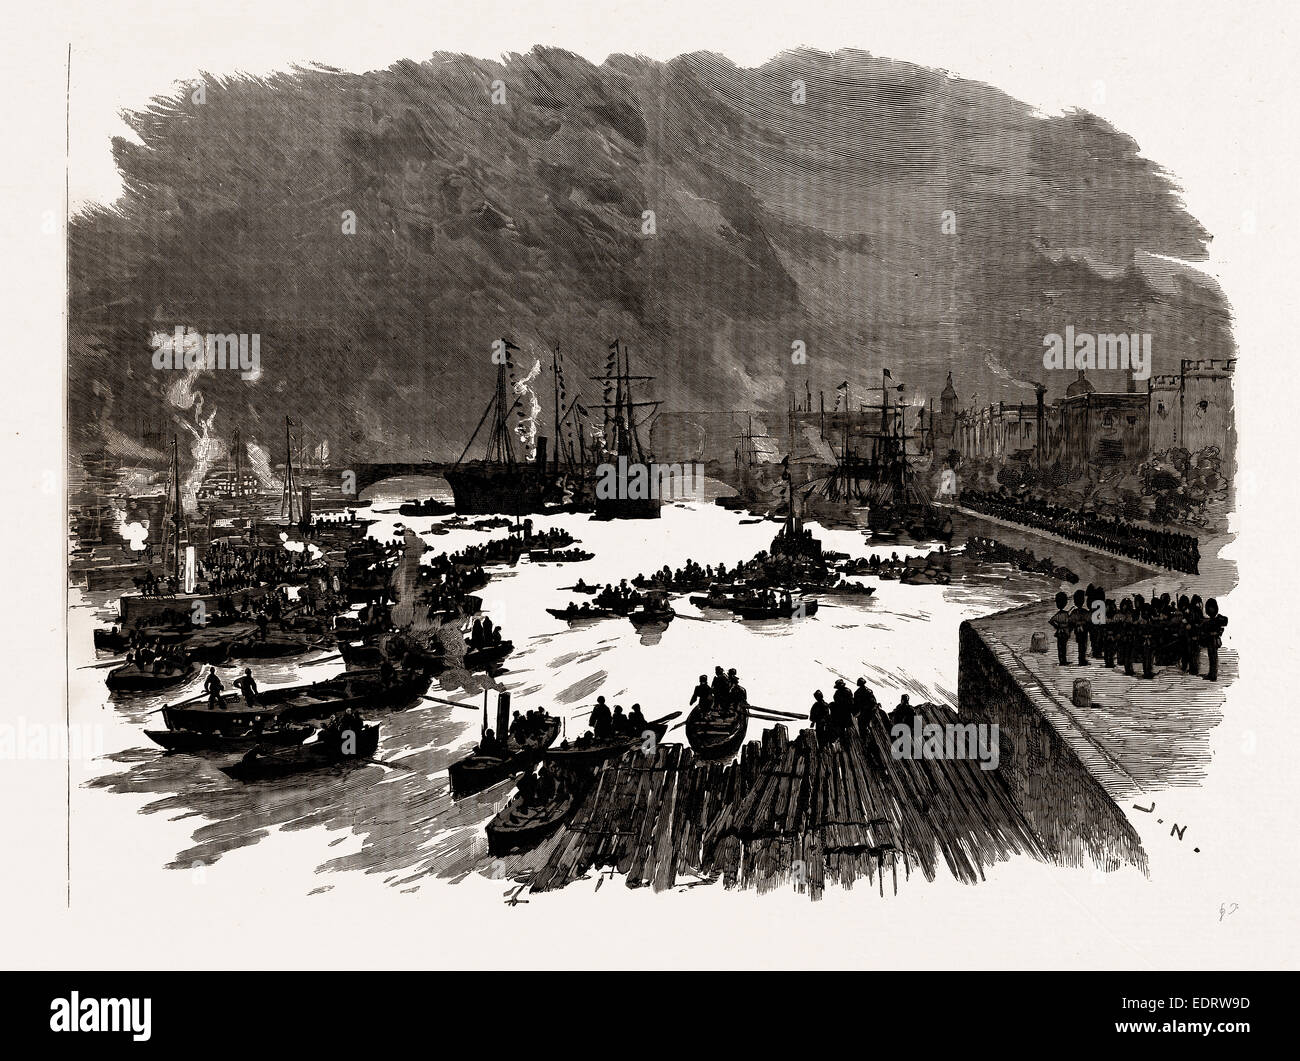 THE LAYING OF THE MEMORIAL STONE OF THE NEW TOWER BRIDGE BY THE PRINCE OF WALES: THE SCENE ON THE THAMES, LONDON, - Stock Image